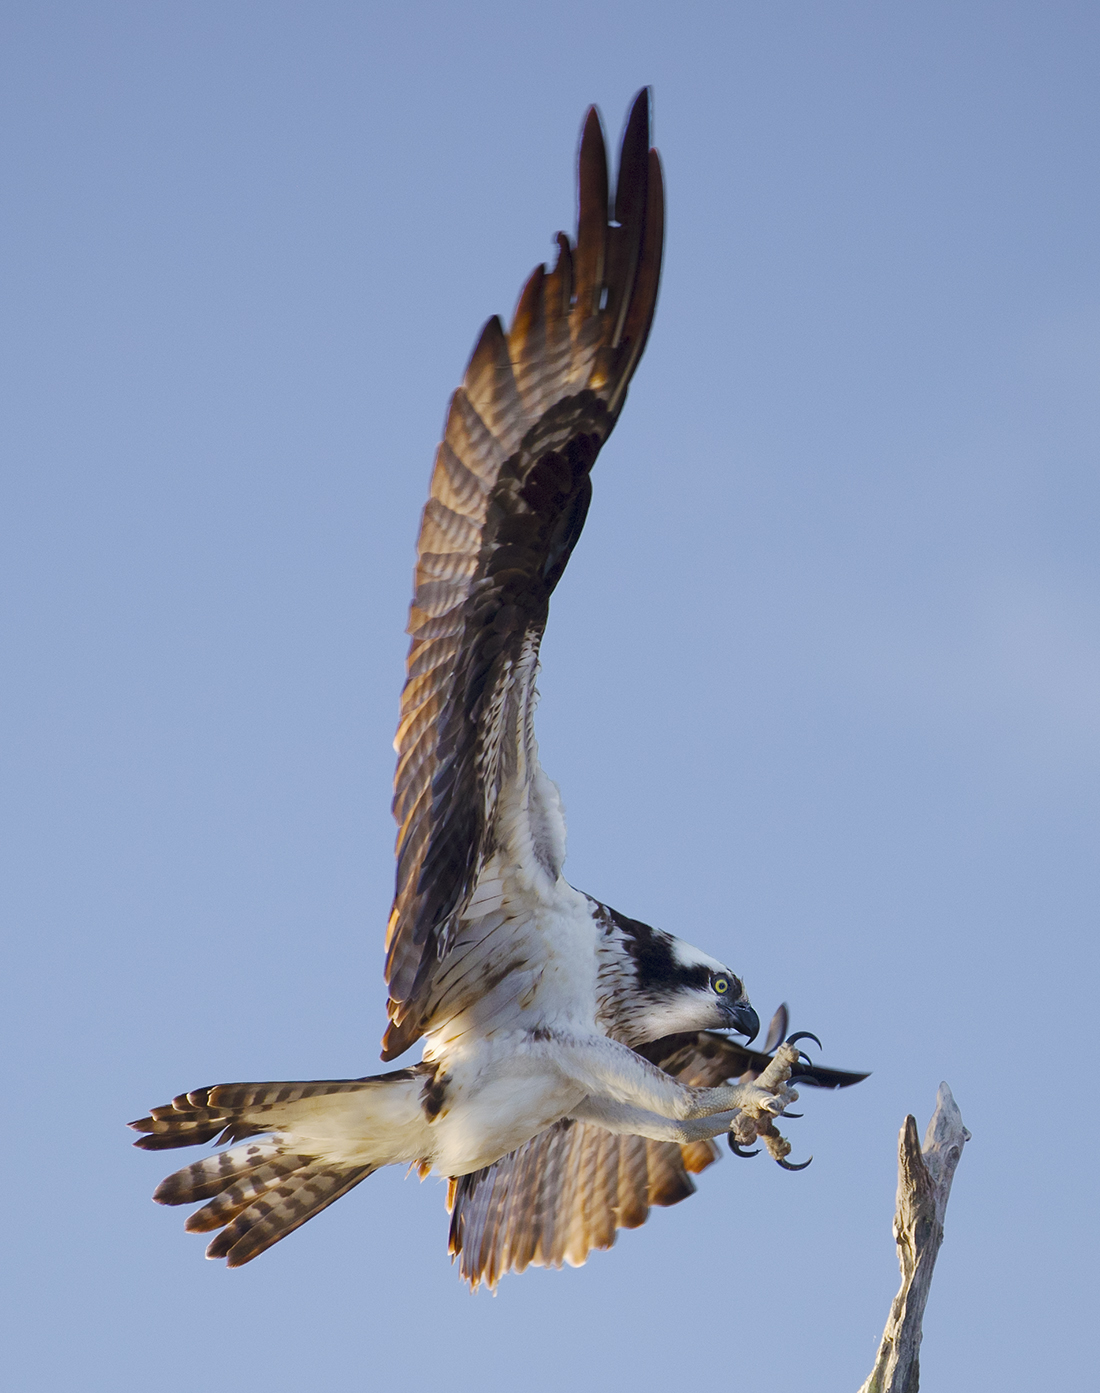 April 2018 – Central Florida Osprey & Spoonbill Photo Safari & Expedition